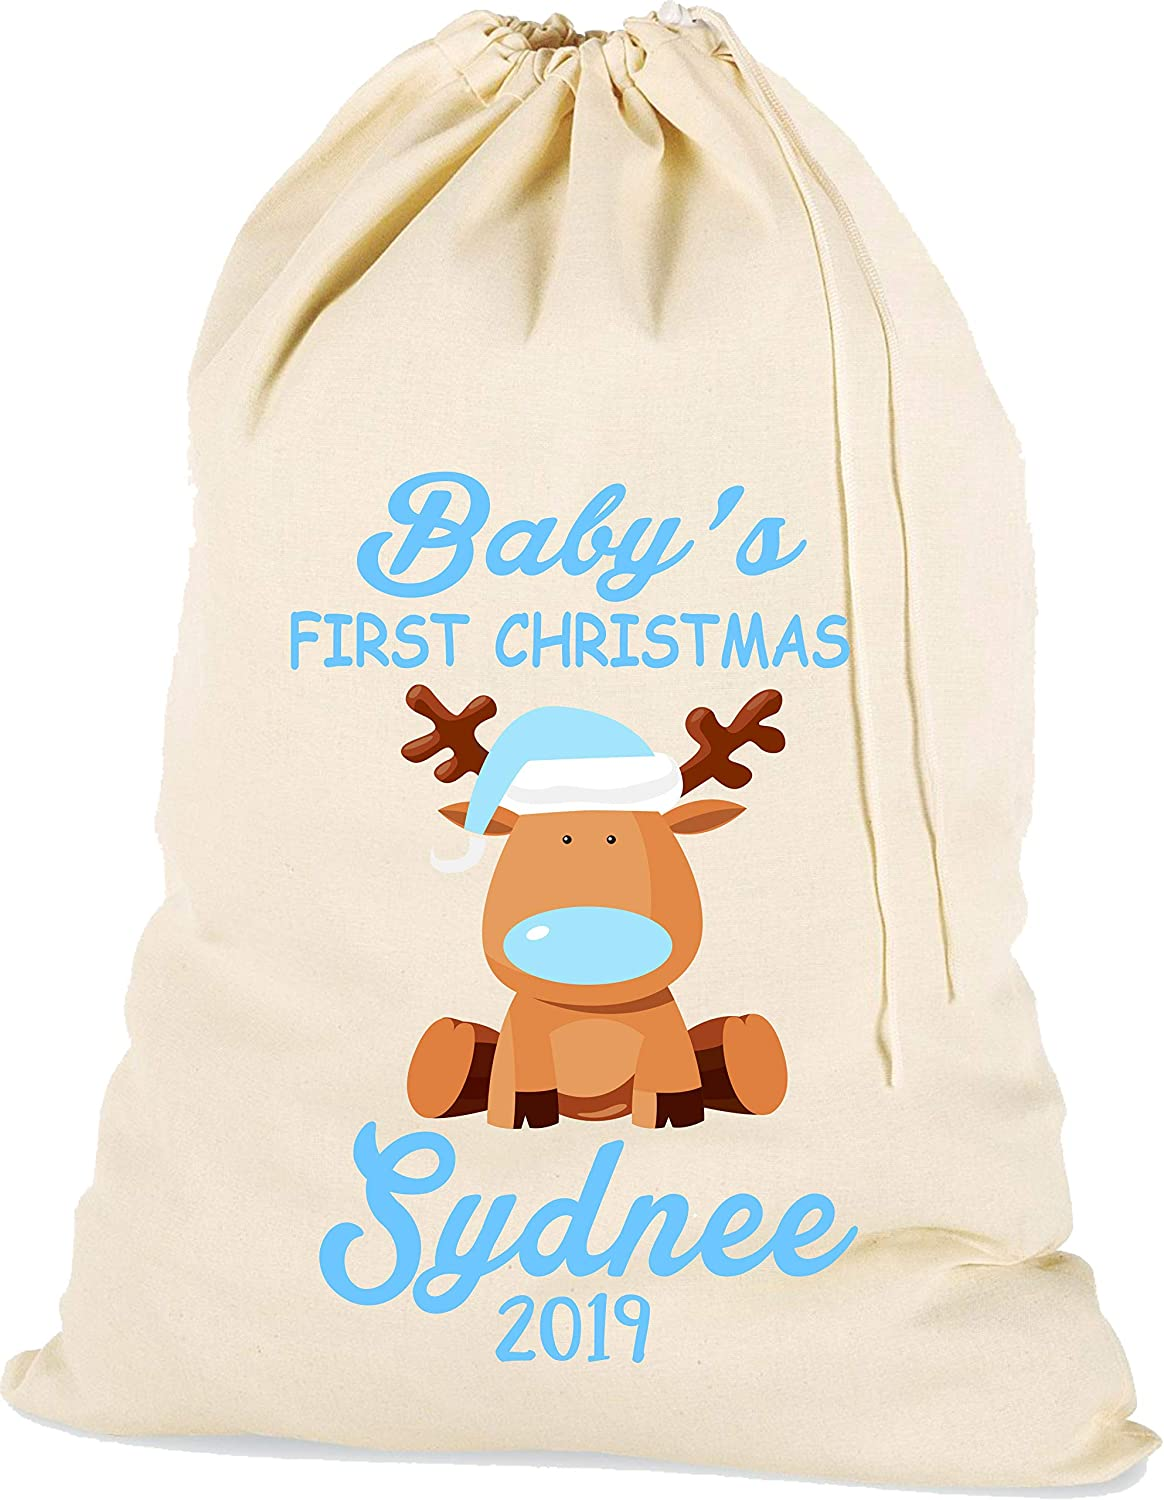 The Lazy Cow Personalised Baby First Christmas Santa Sack in BLUE Cotton Drawstring Gift Bag blue